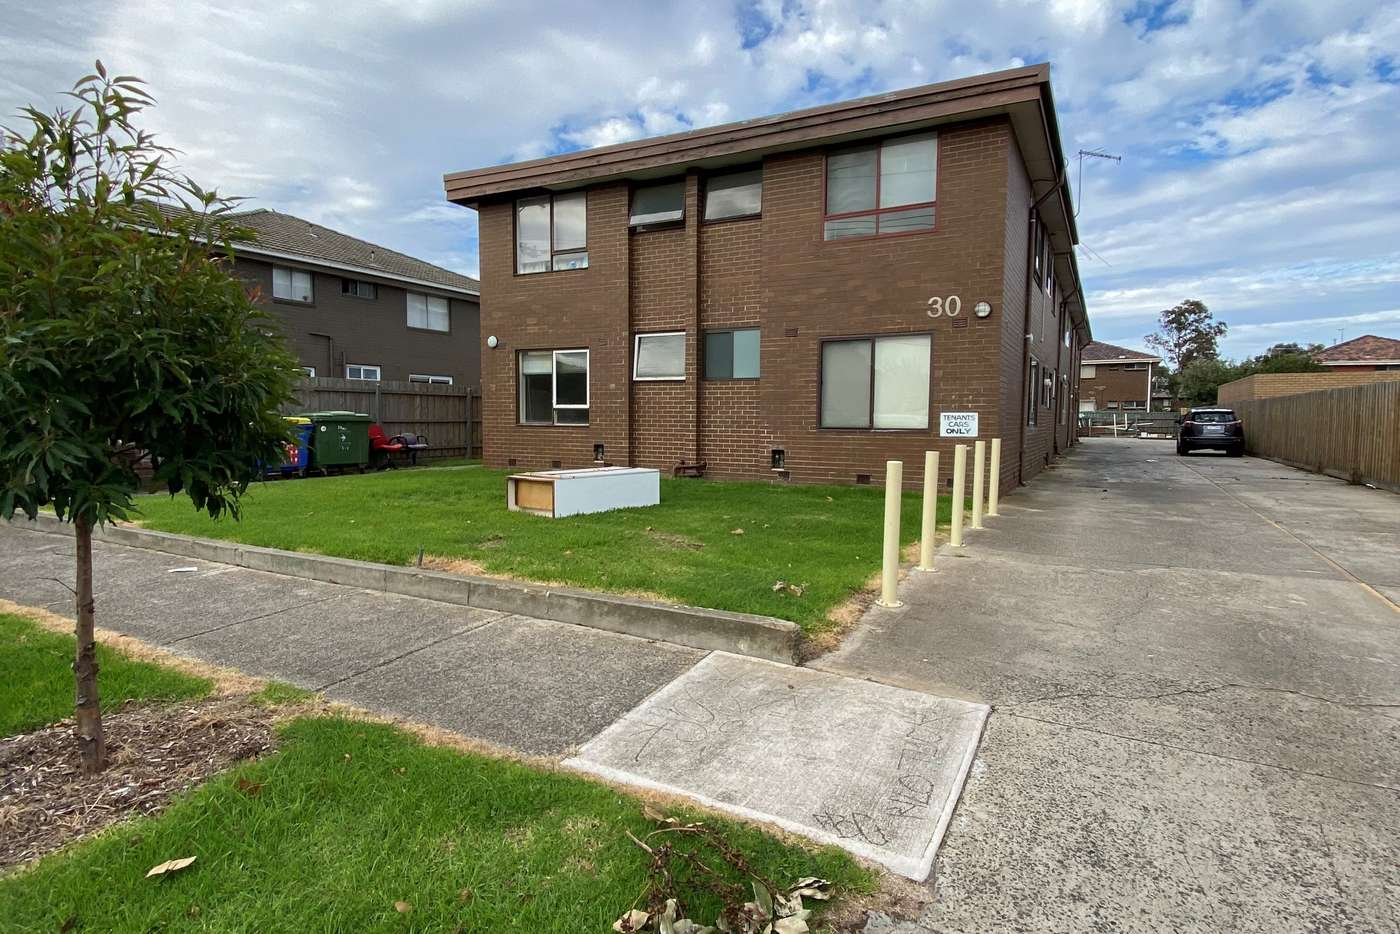 Main view of Homely house listing, 7/30 Empire Street, Footscray VIC 3011